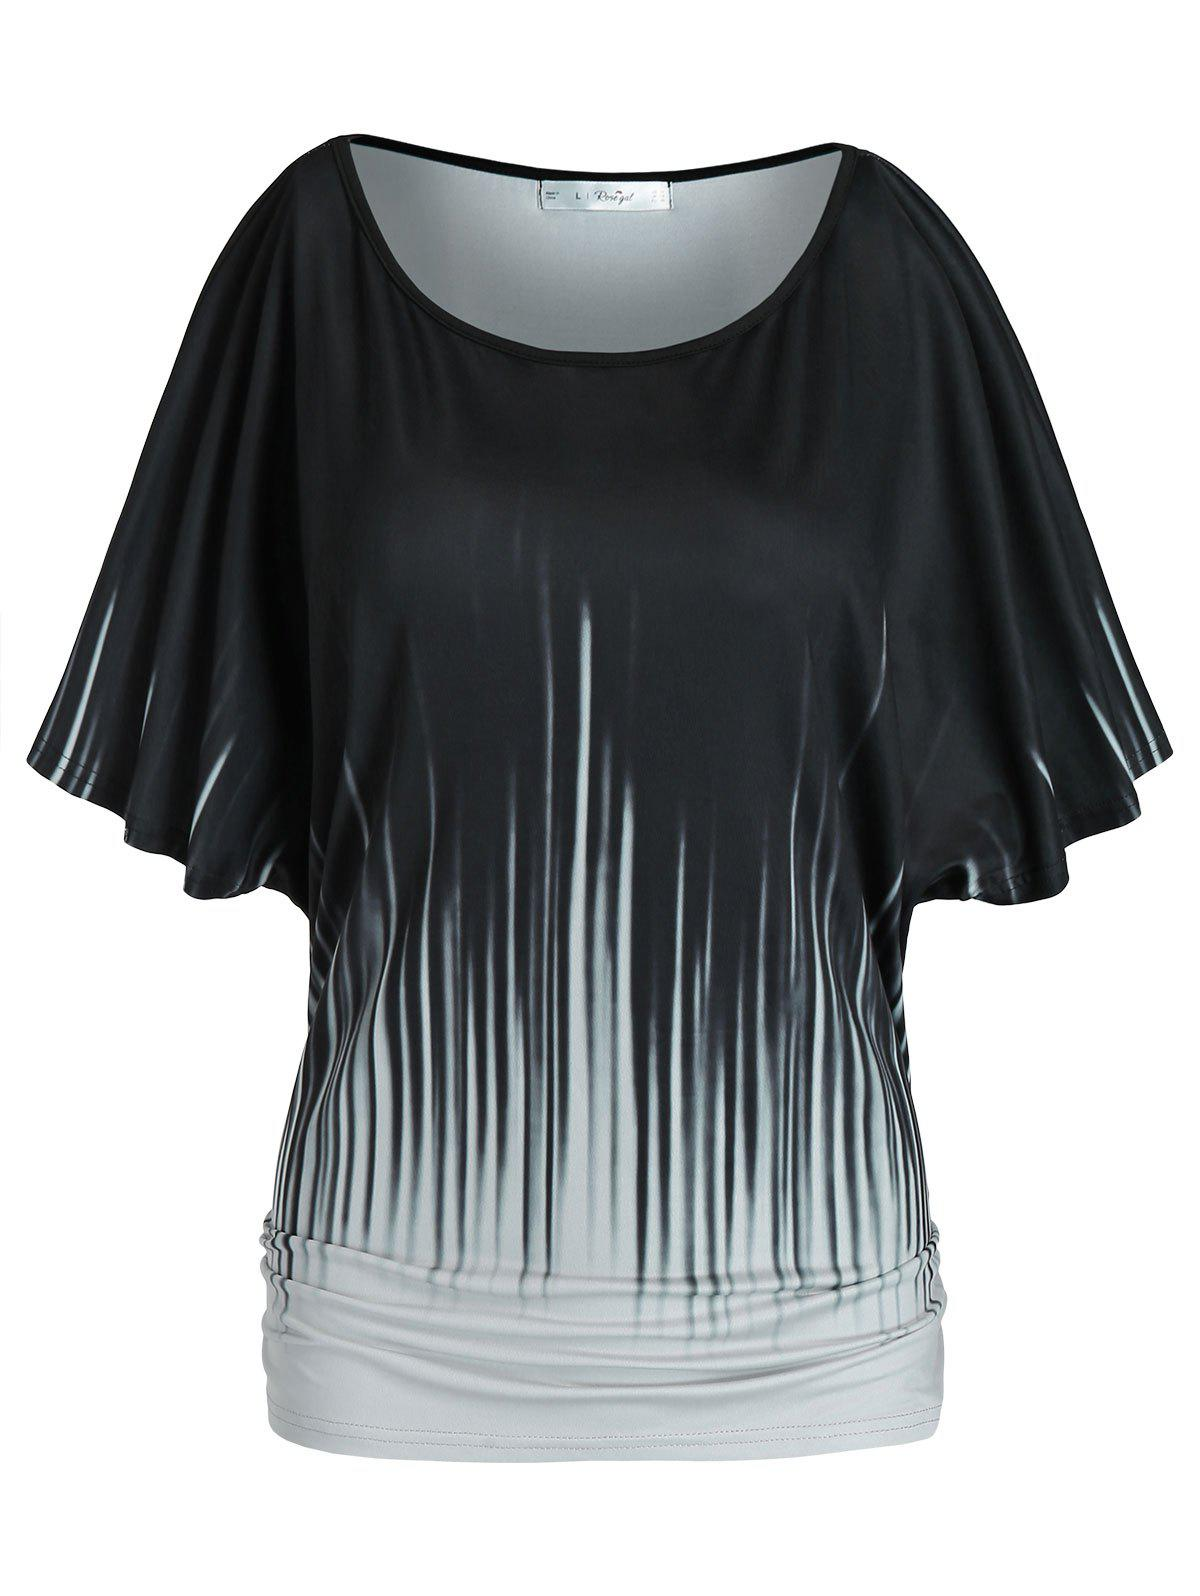 Plus Size Batwing Sleeve Ruched T Shirt - BLACK 5X